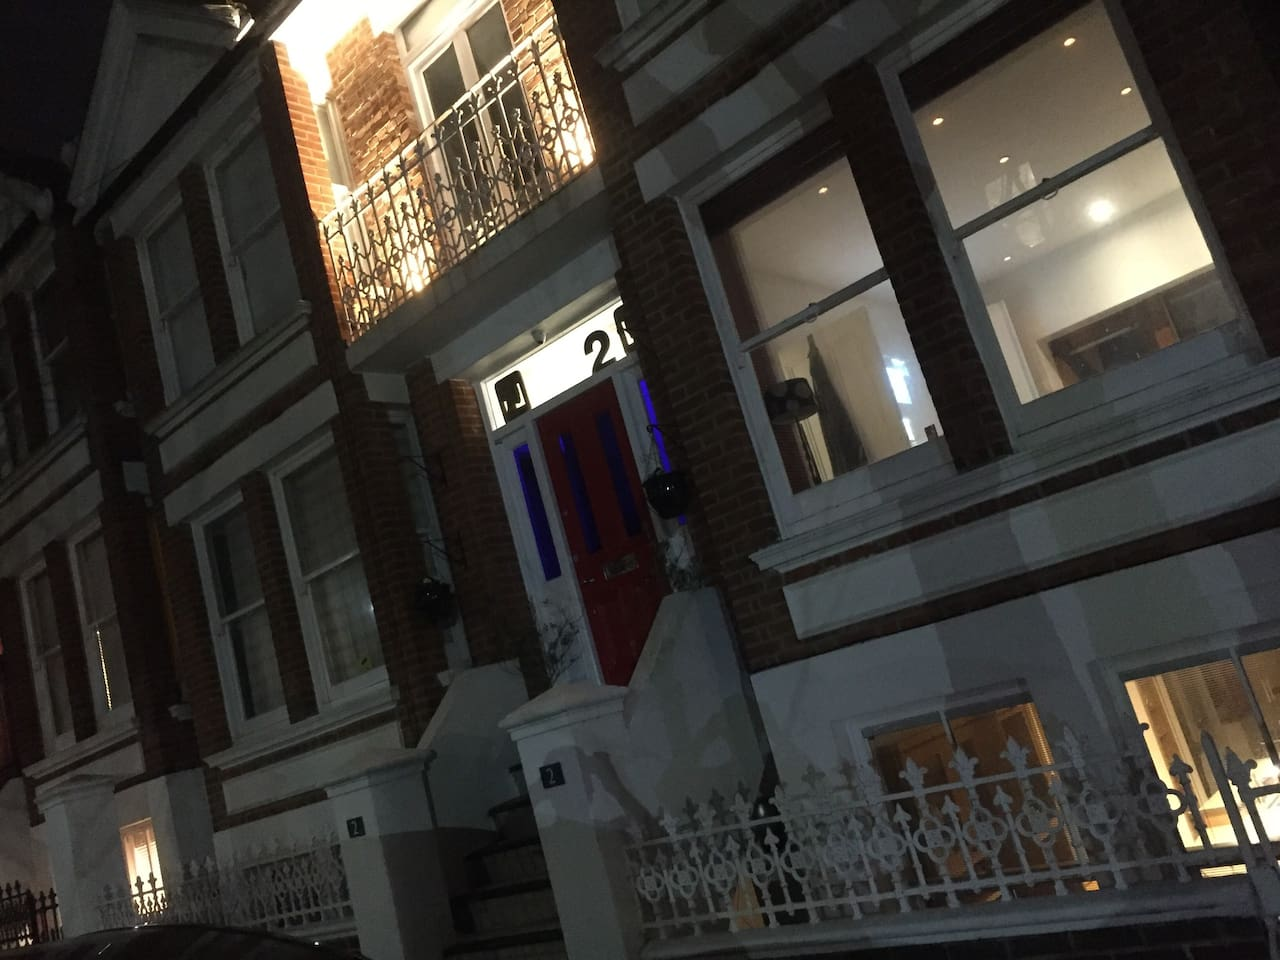 Front view of the house at night